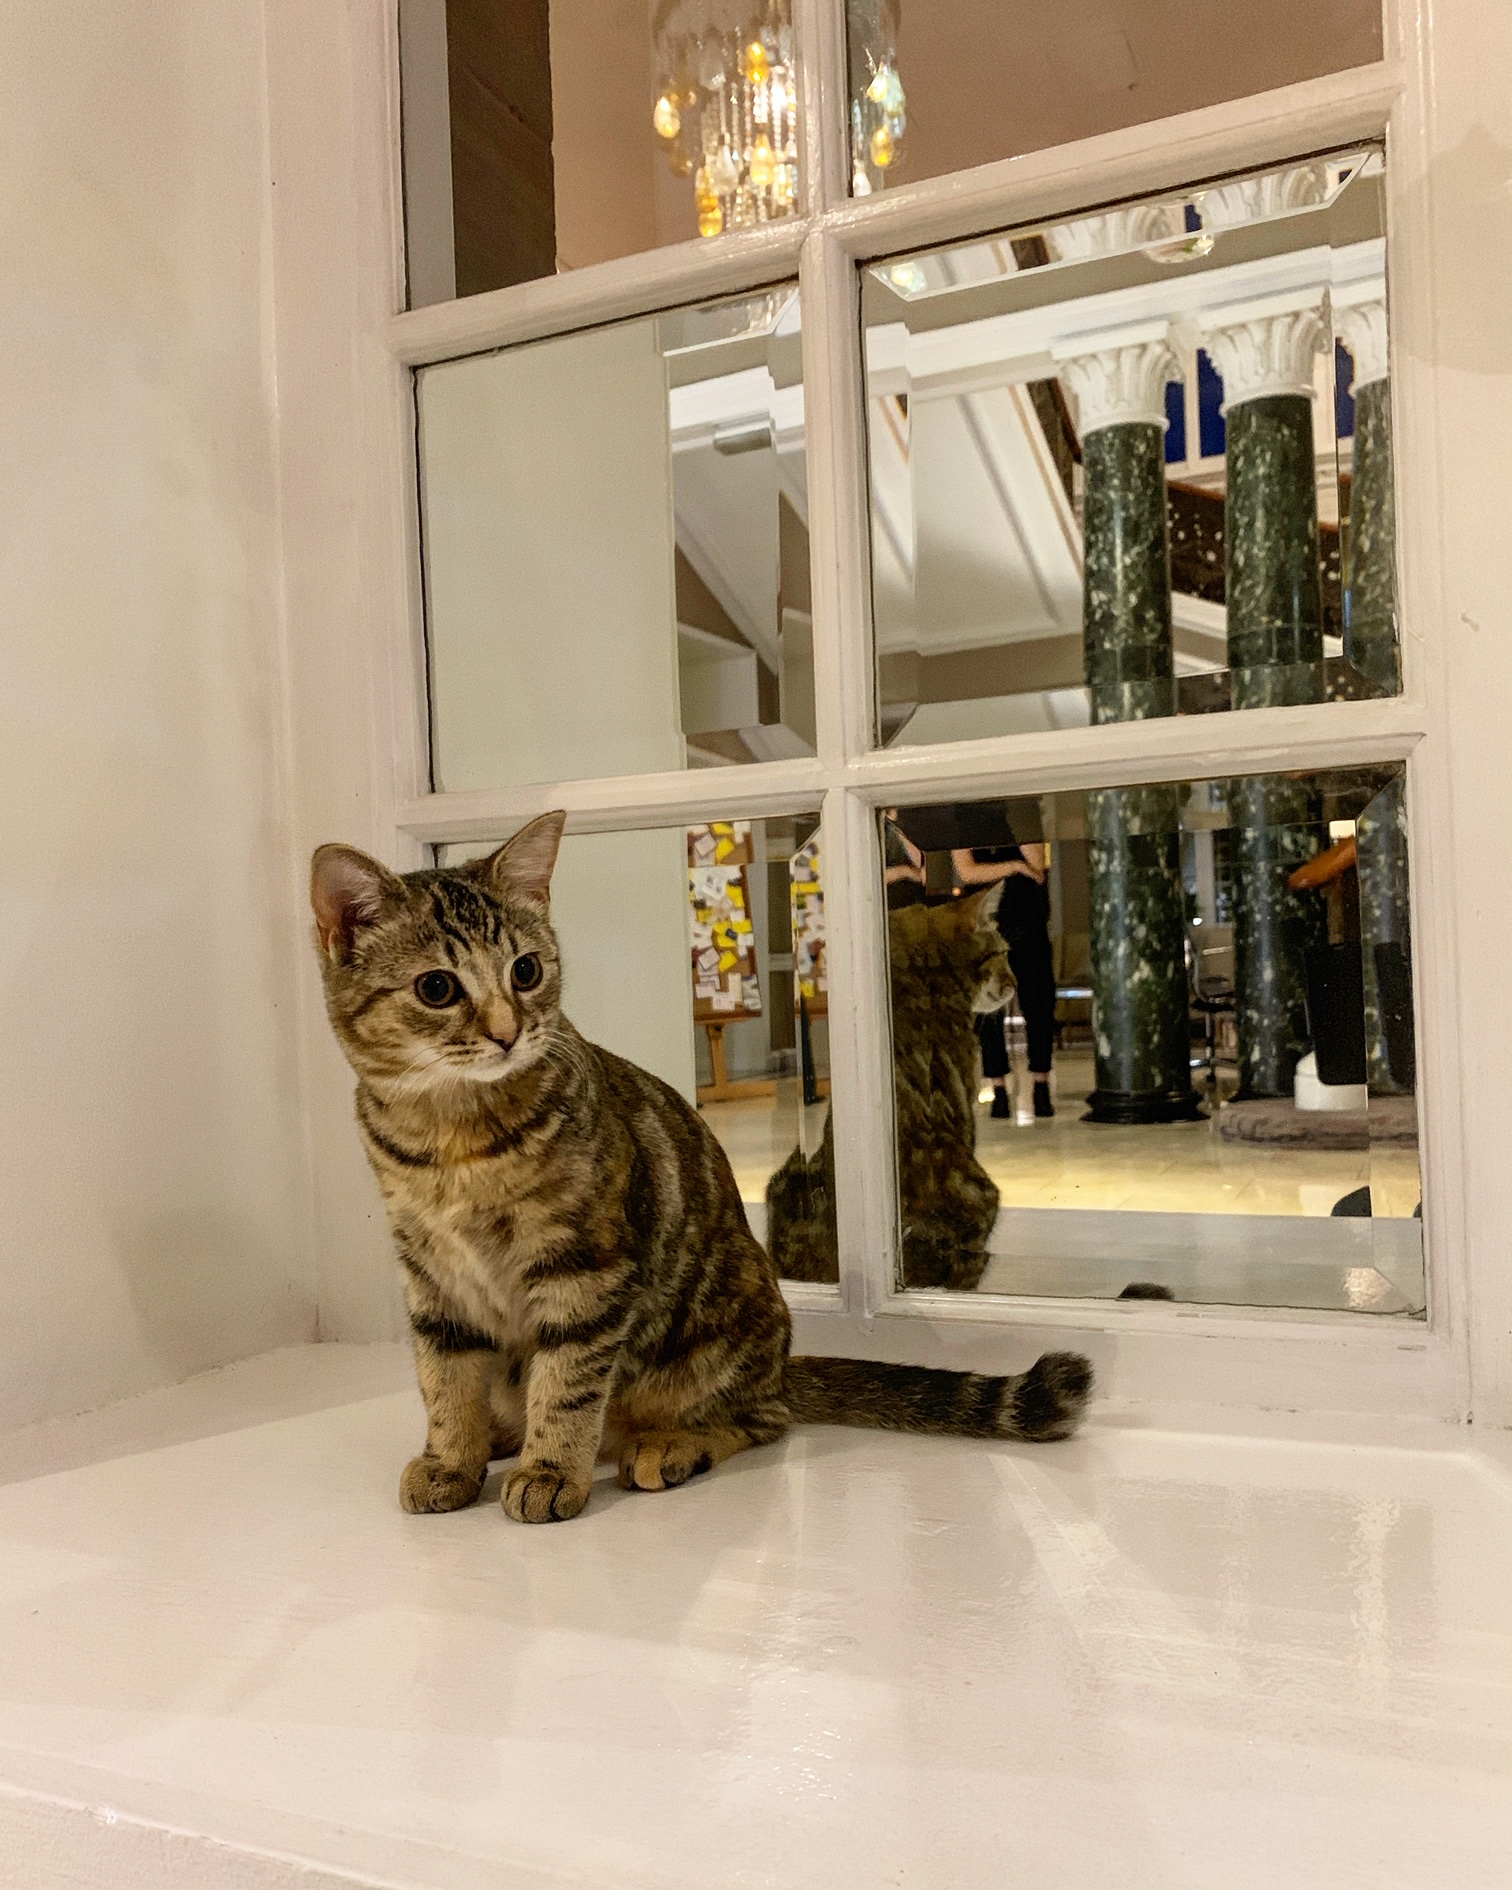 2019-07-18 (Quita the Kitty) Waldorf Astoria Edinburgh